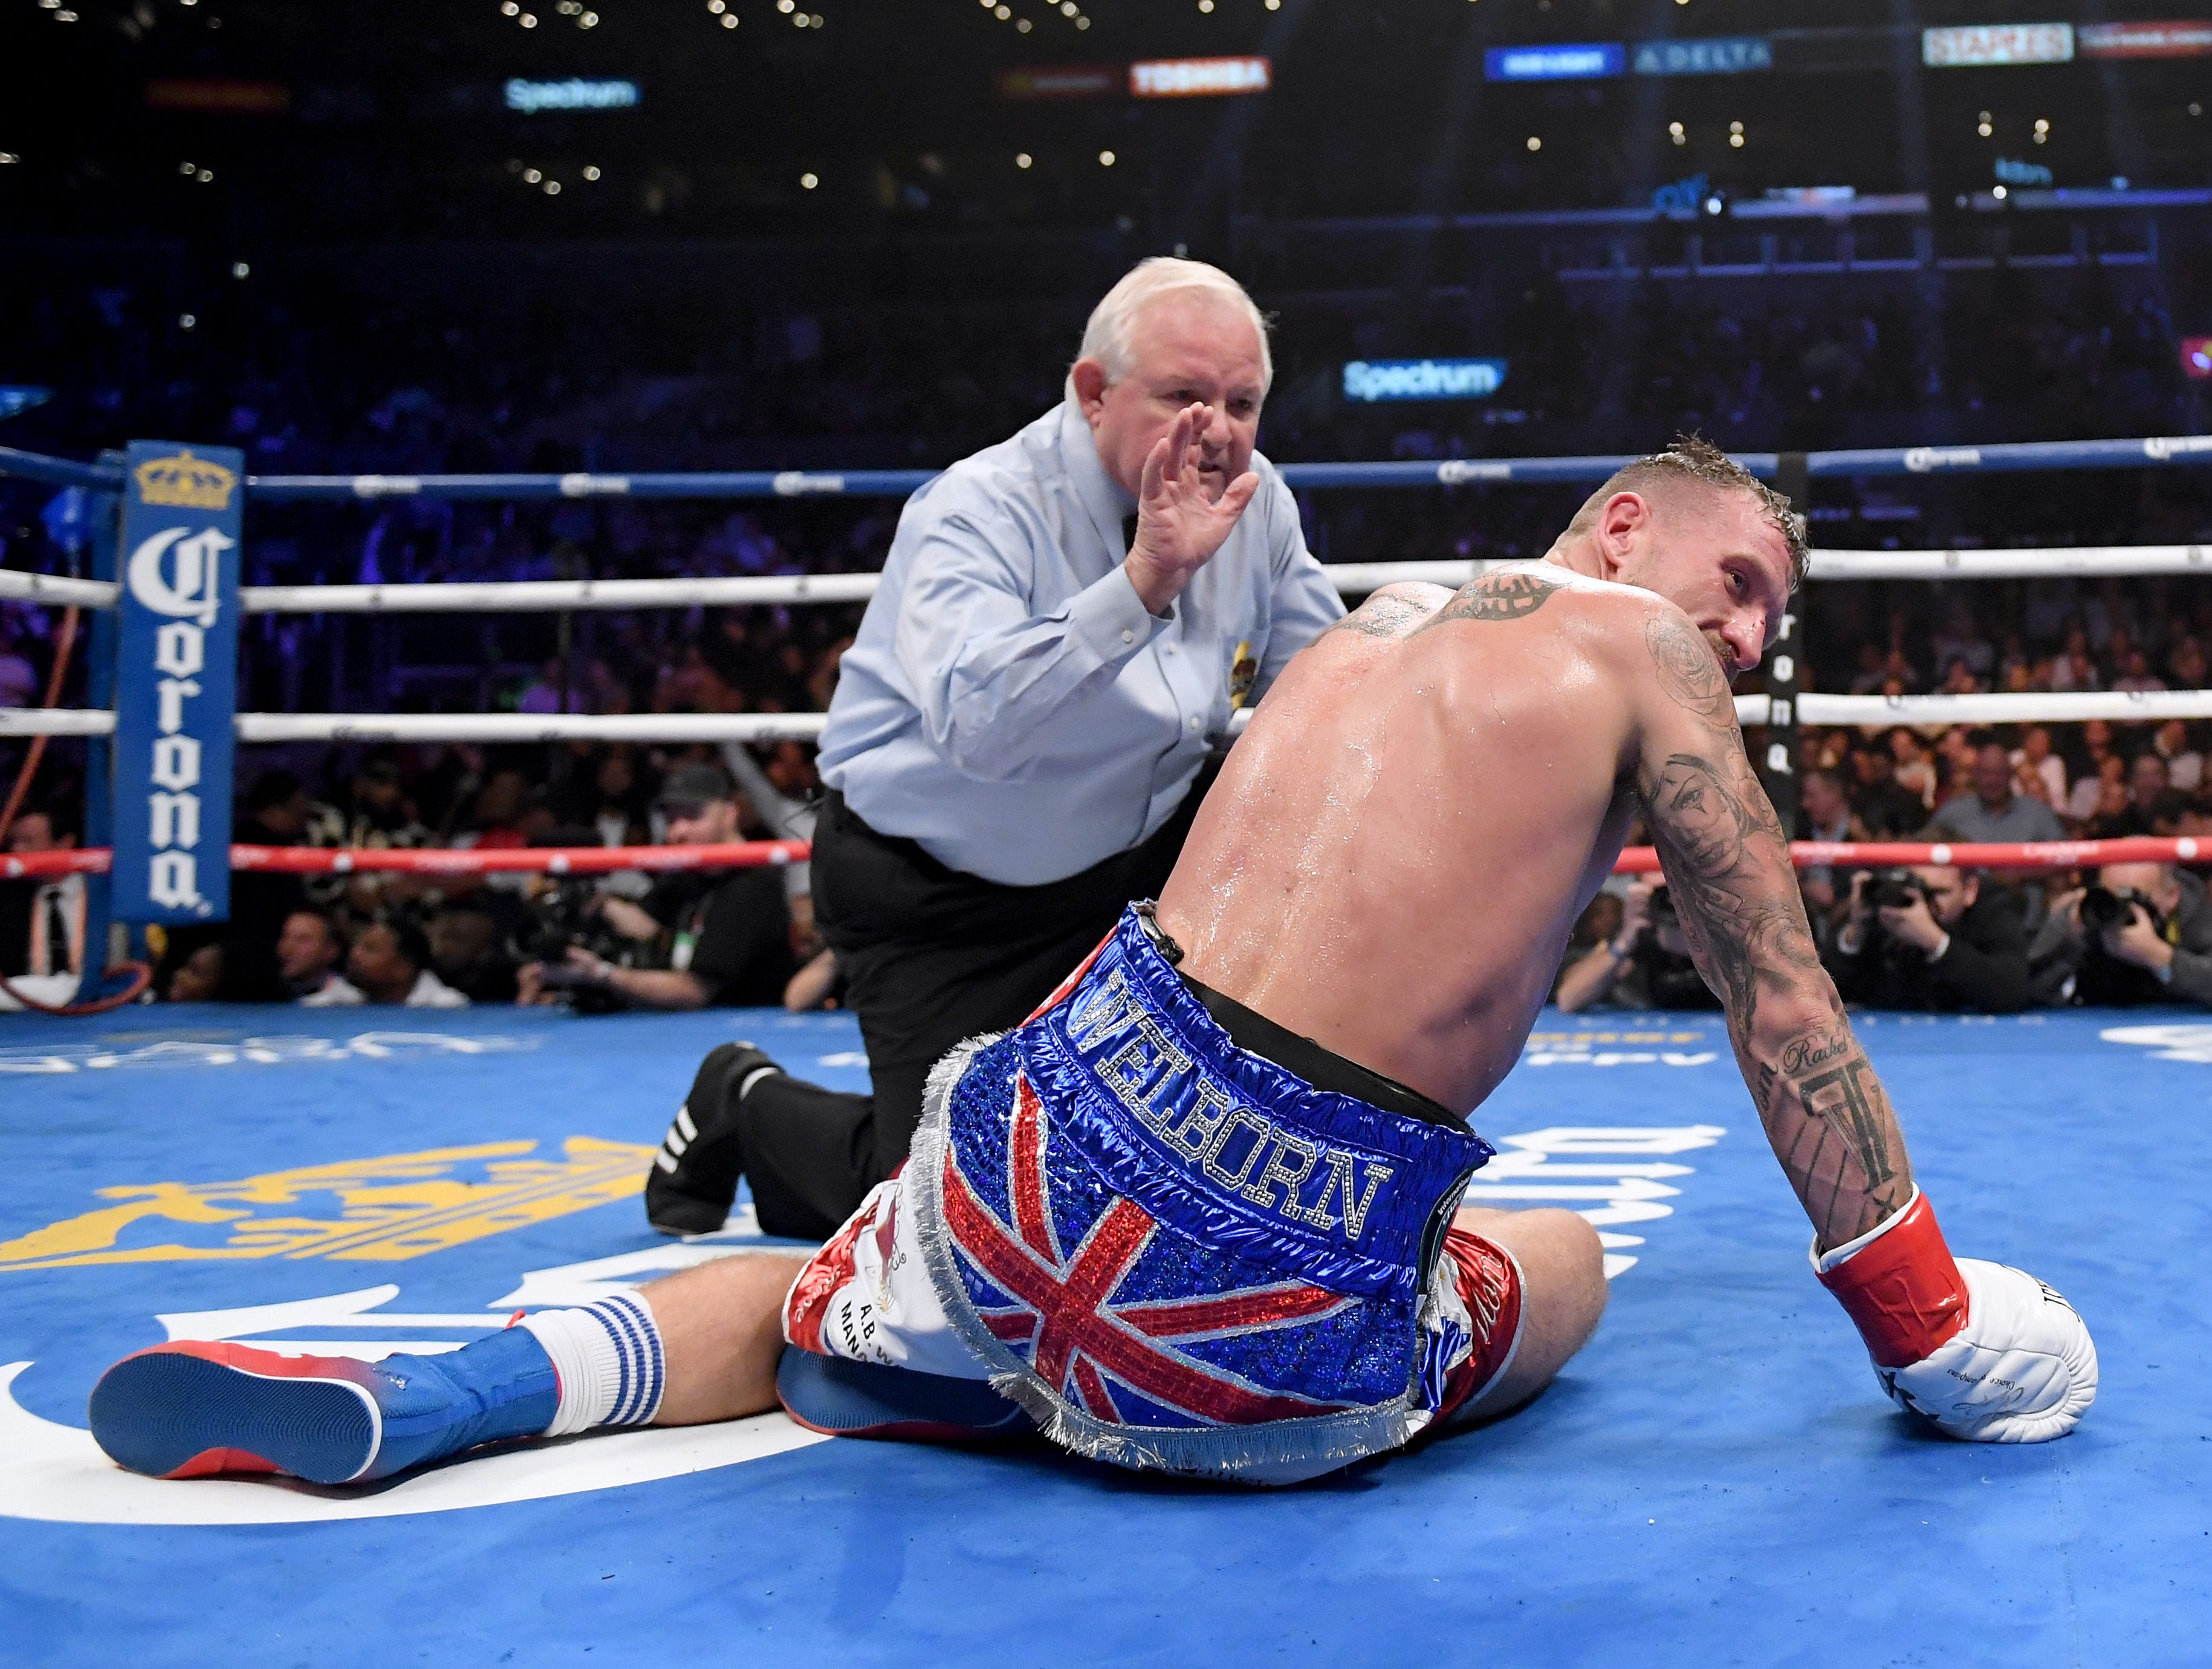 Jason Welborn is counted out during the fourth round of his WBA-IBF-IBO junior-middleweight title fight against Jarrett Hurd on Dec. 1 at Staples Center.